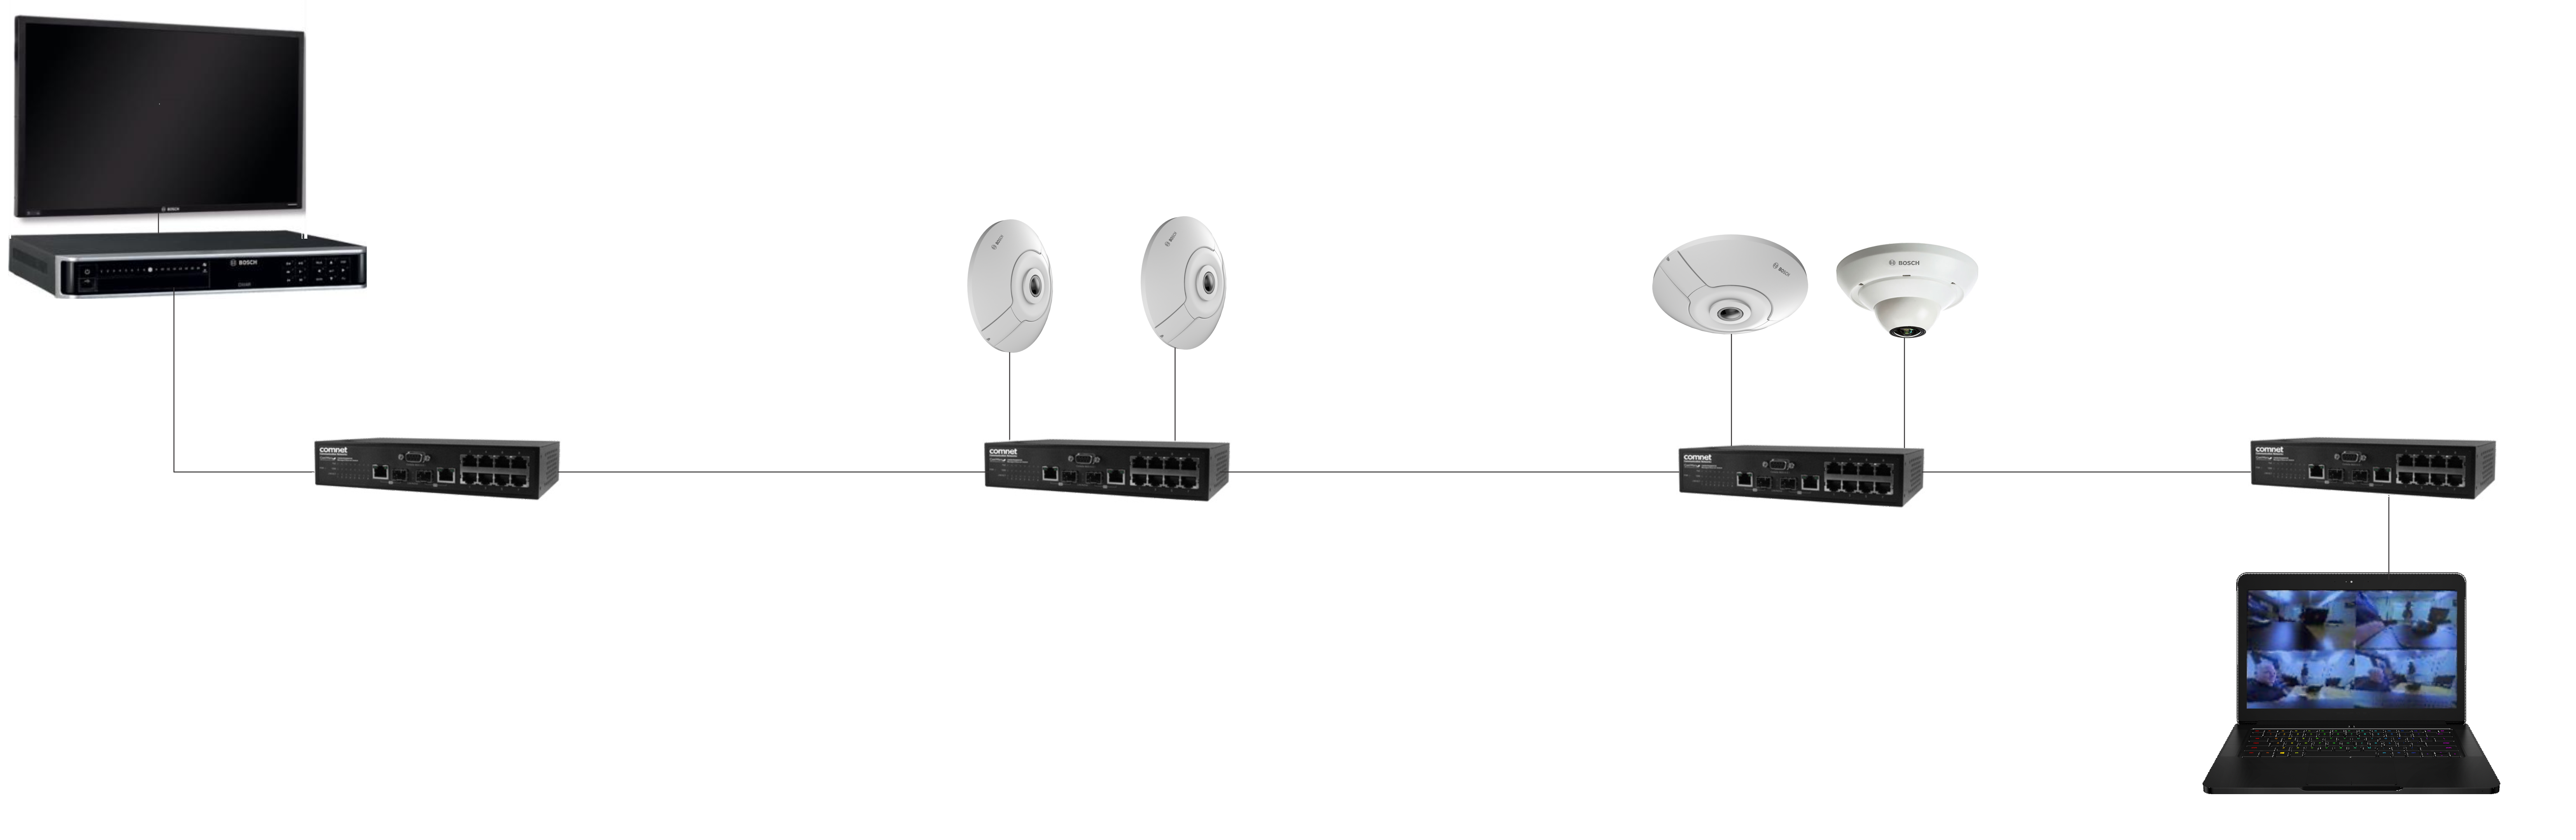 Panoramic with Divar Network 3000 Diagram Option 3.png